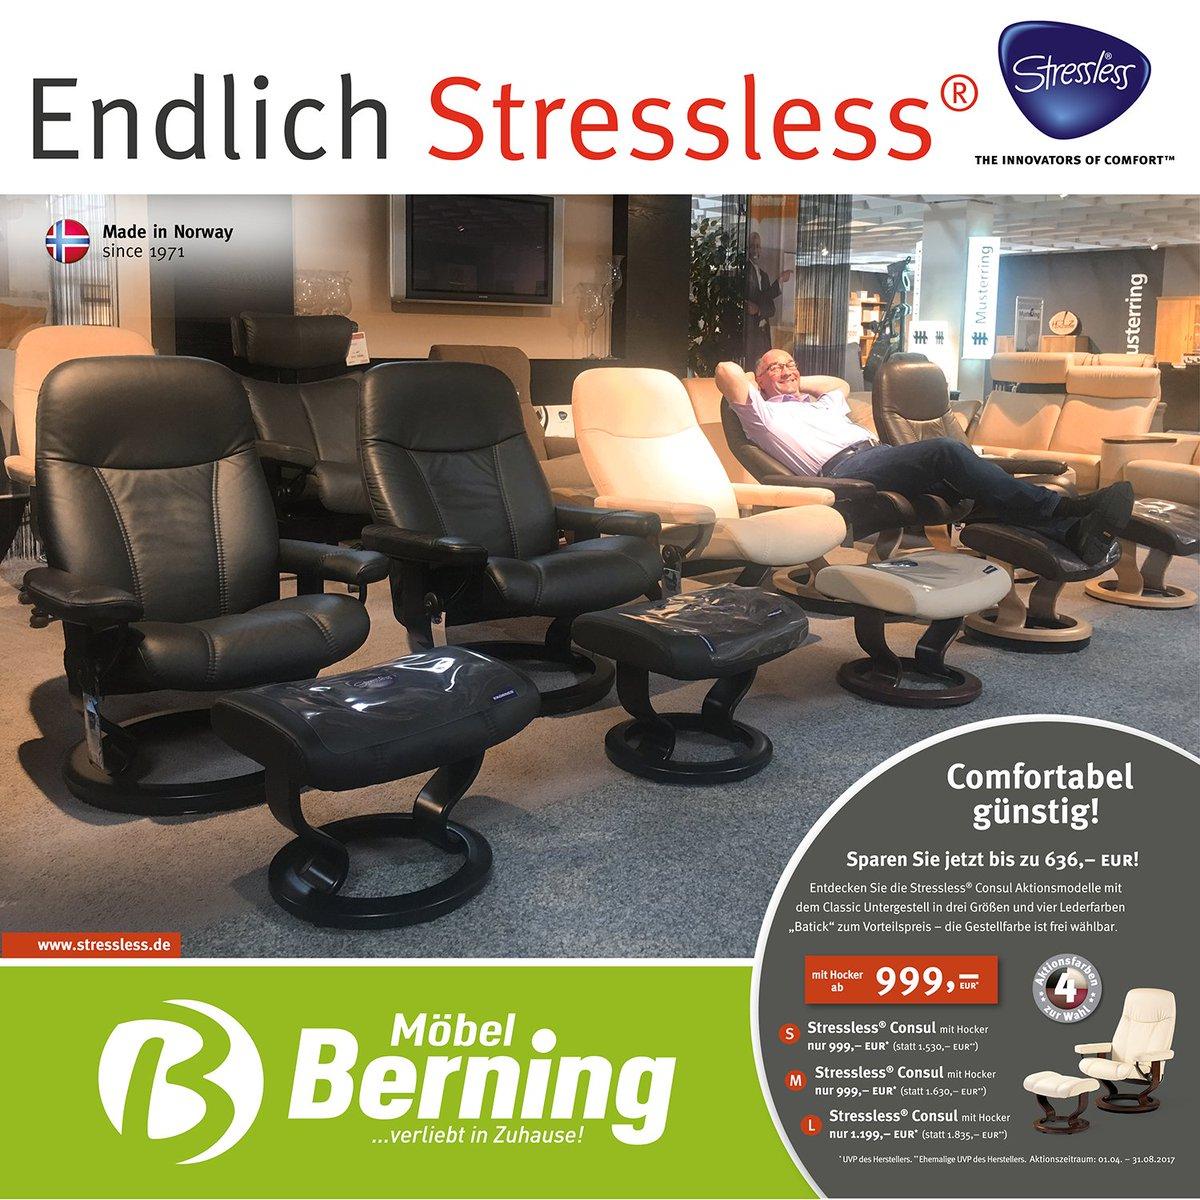 Stressless Lederfarben Moebelberning Hashtag On Twitter